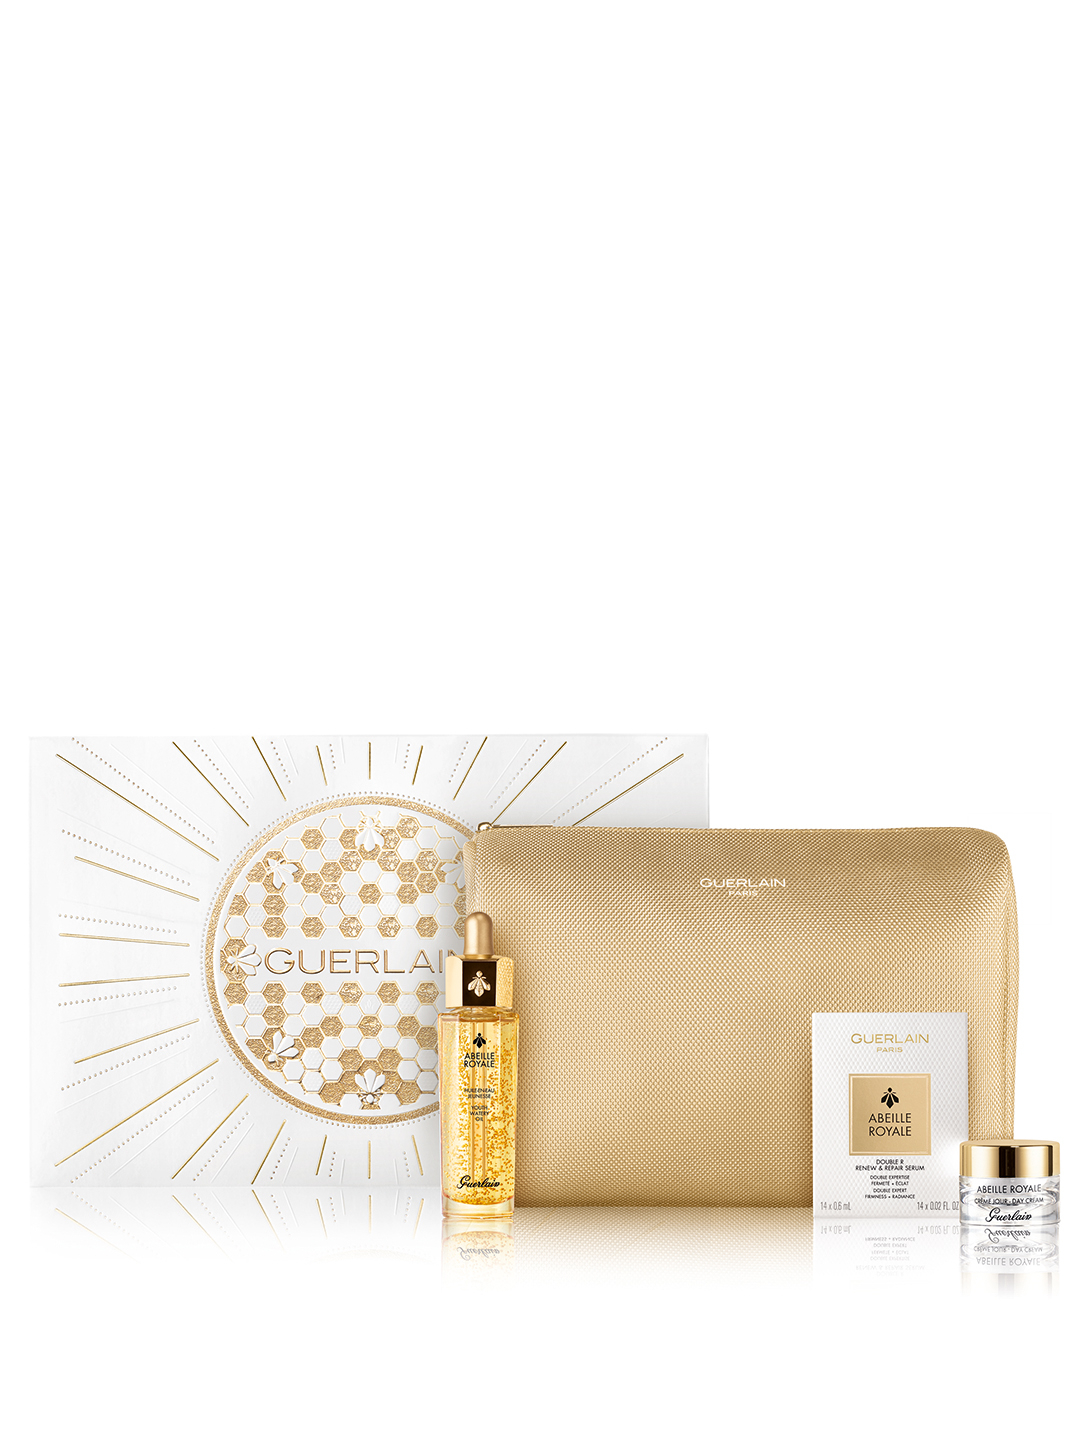 GUERLAIN Abeille Royale Holidays Set Beauty